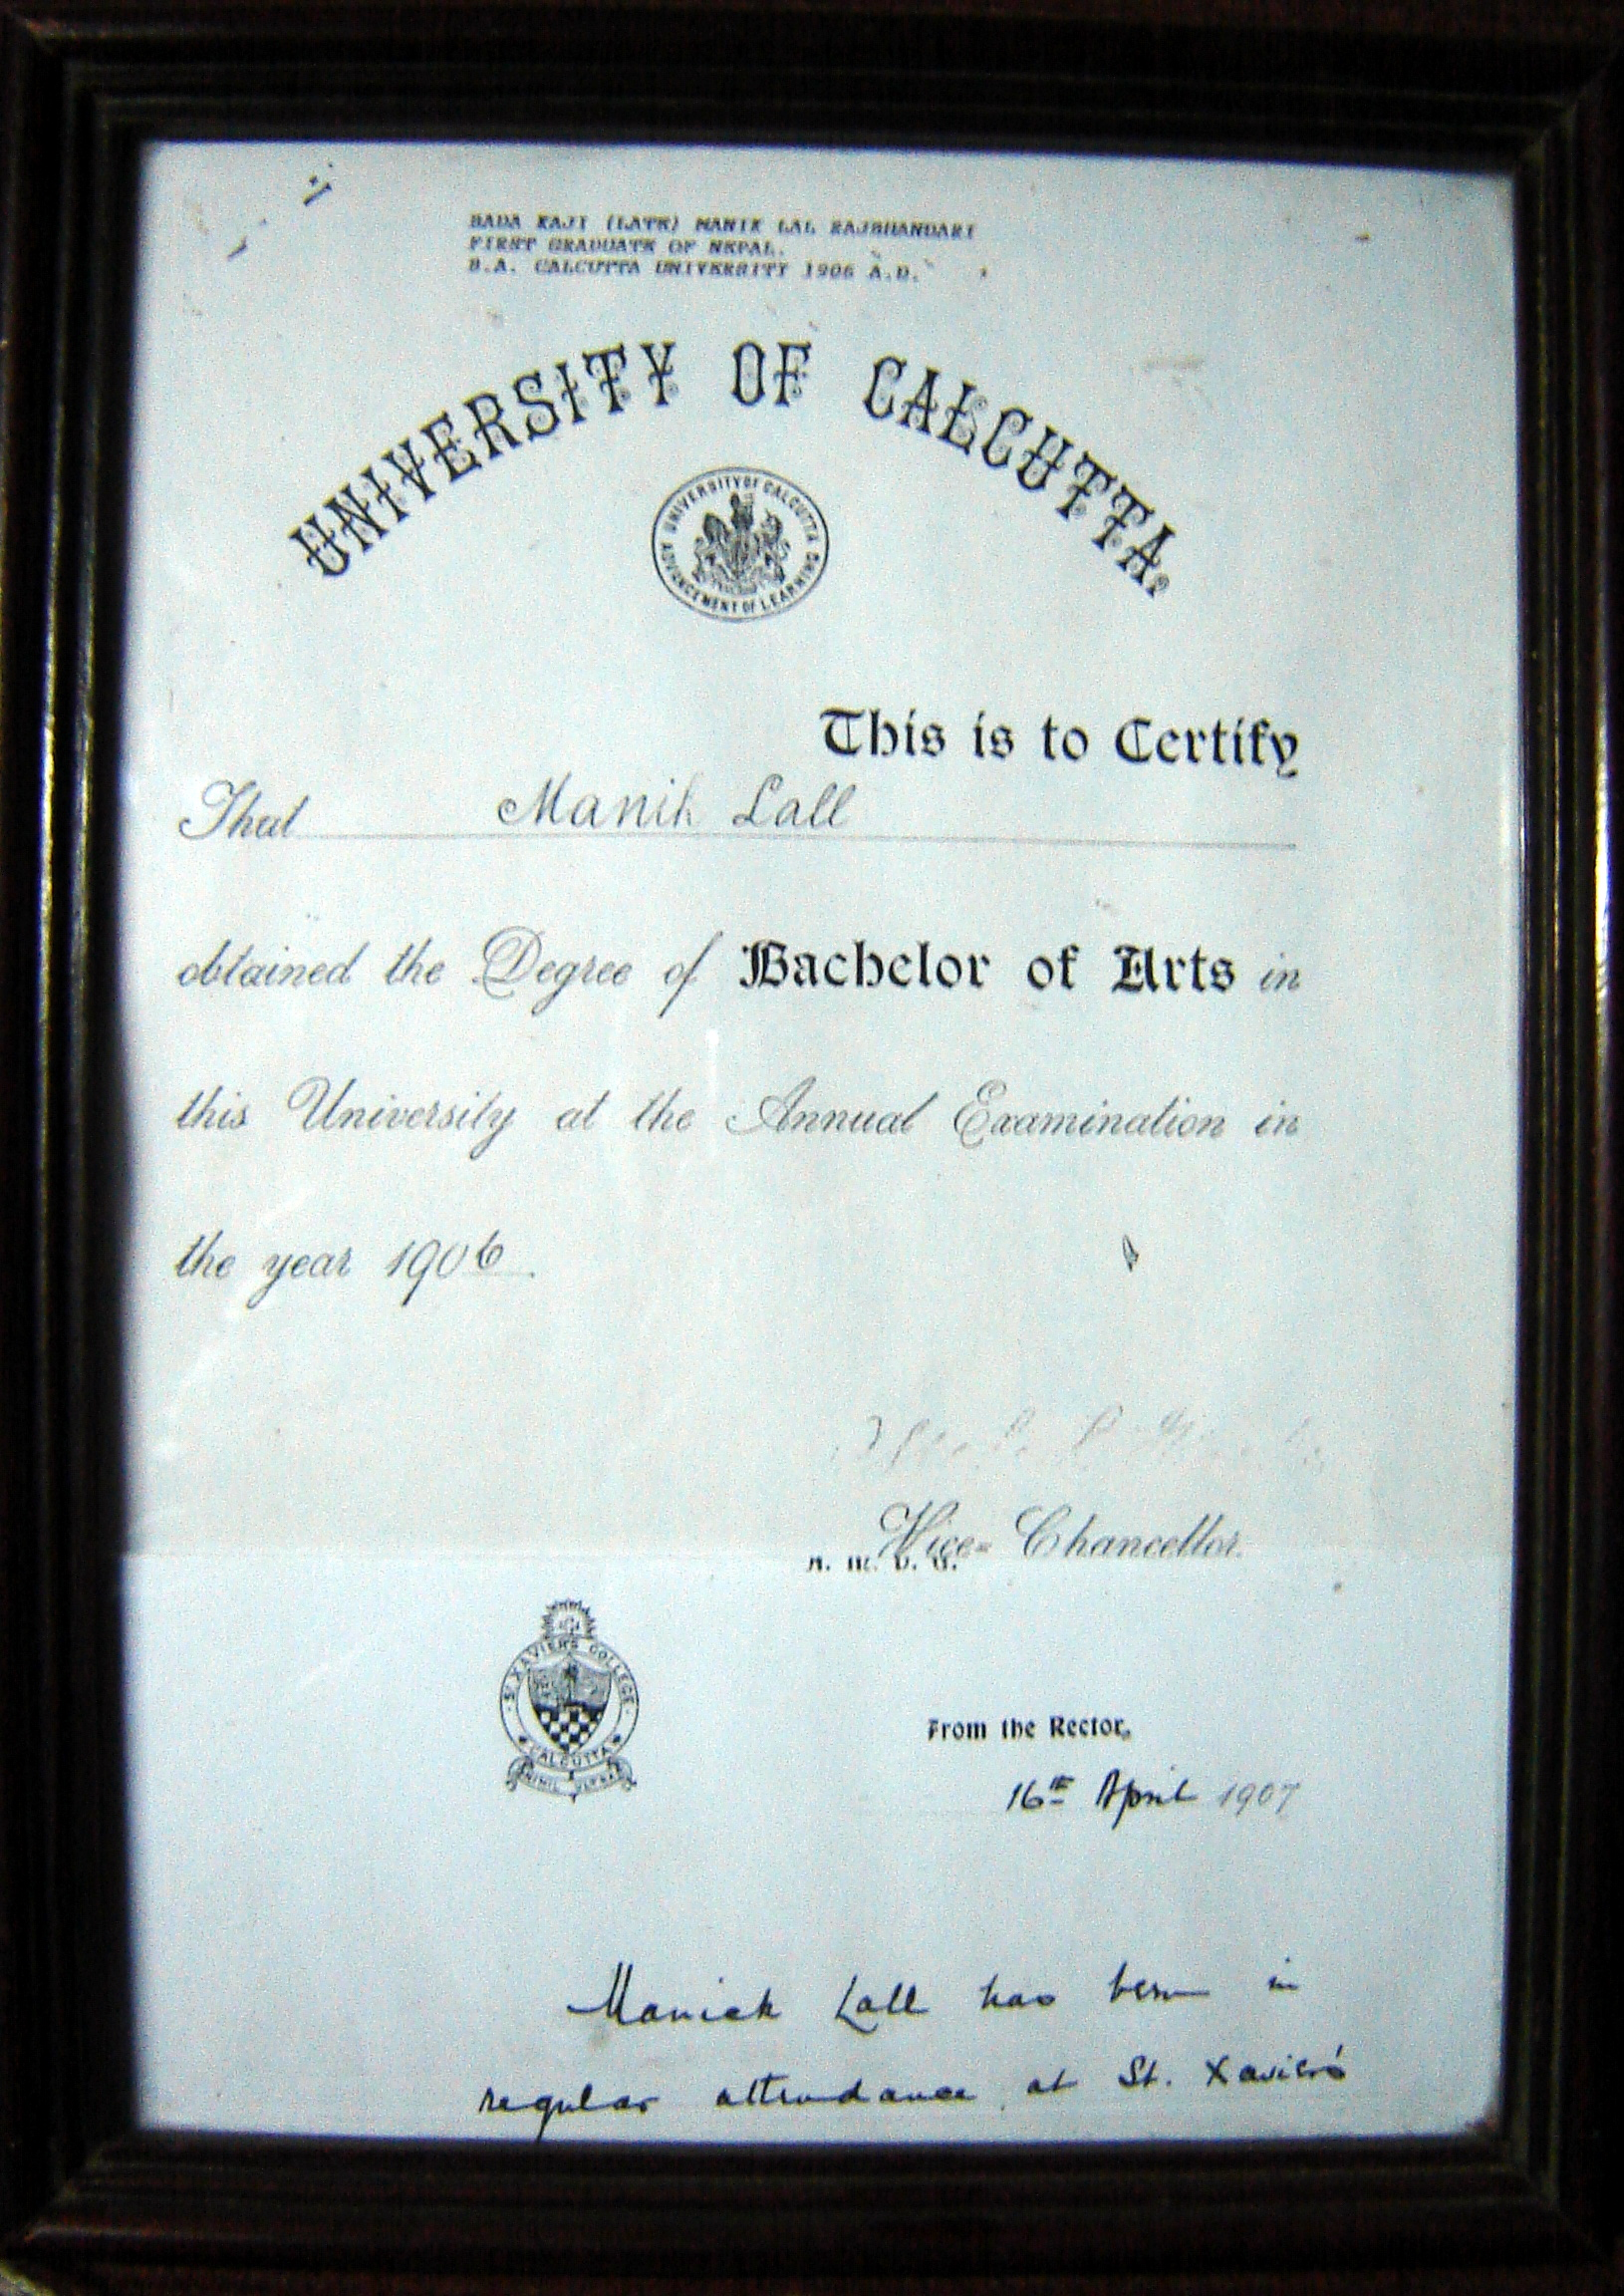 File:First Graduate from Nepal certificate.JPG - Wikimedia Commons